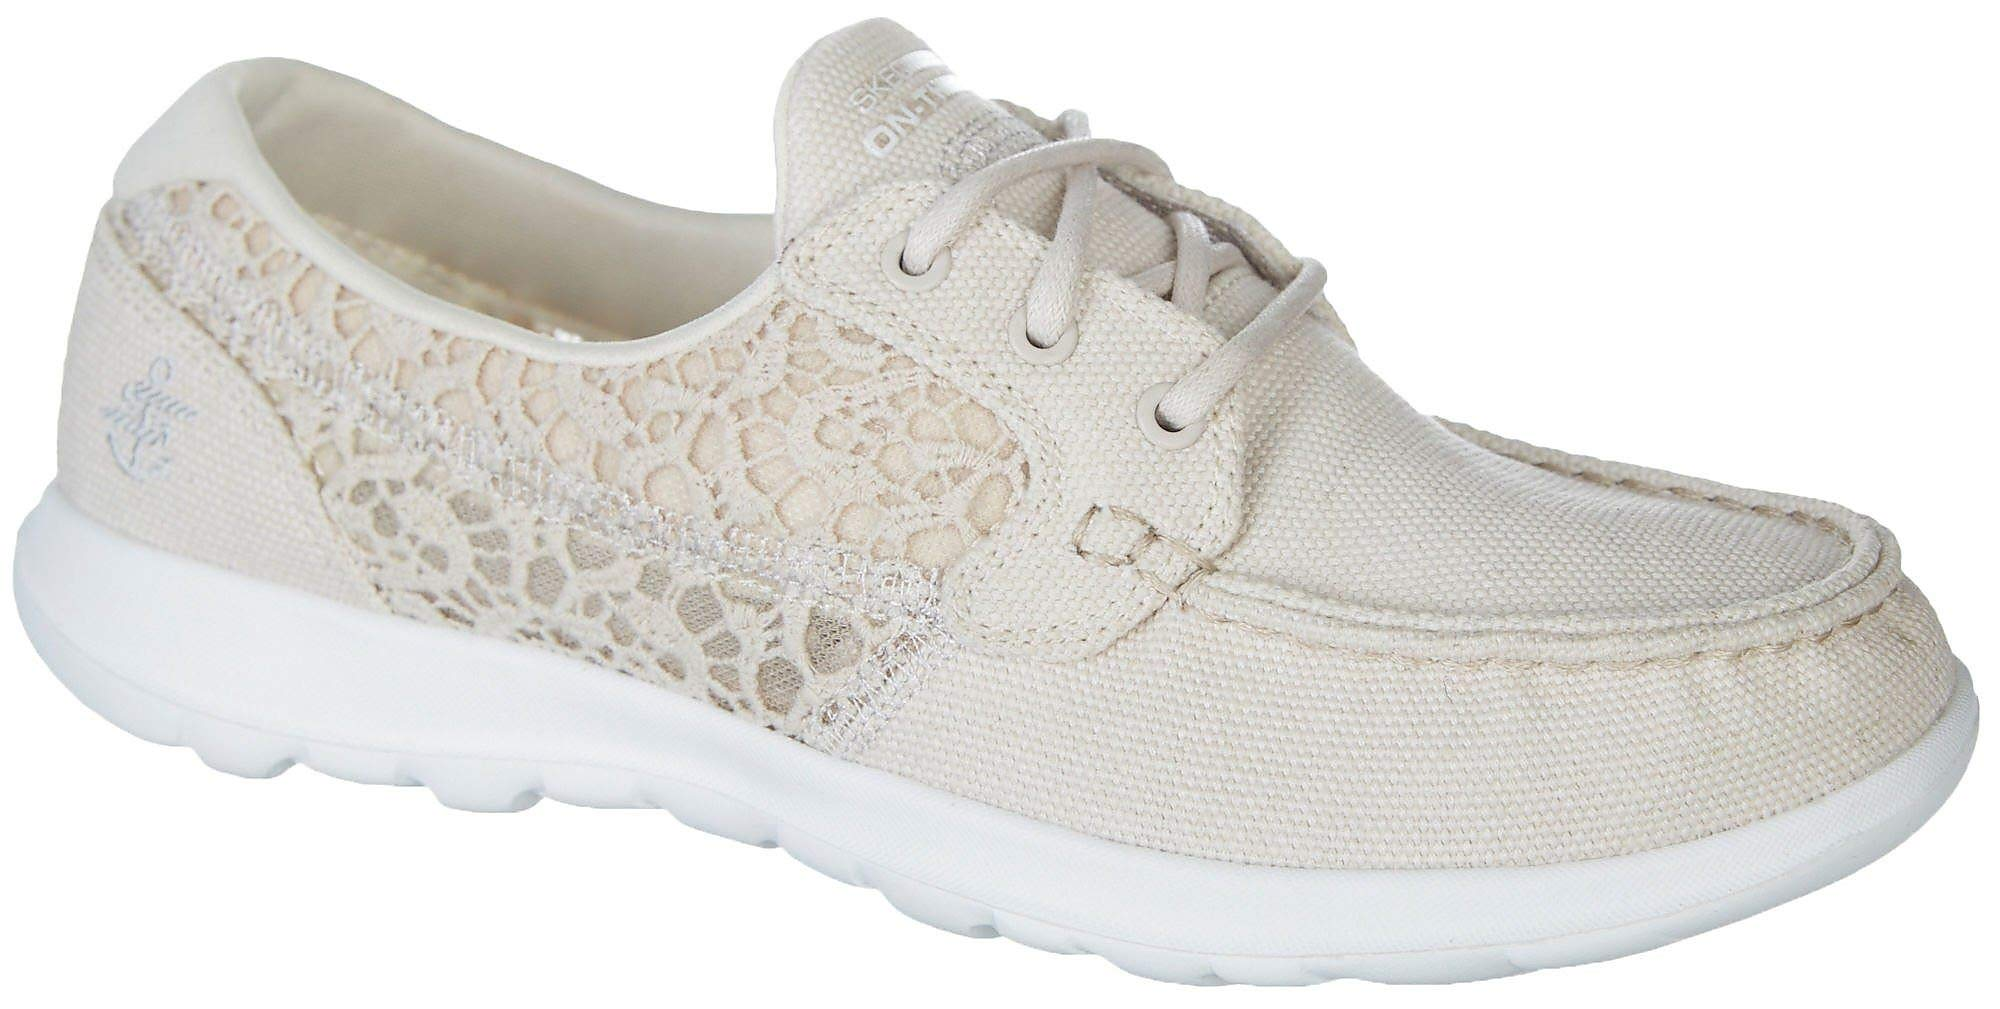 Skechers Performance Women's Go Walk Lite-15431 Boat Shoe,natural,10 M US by Skechers